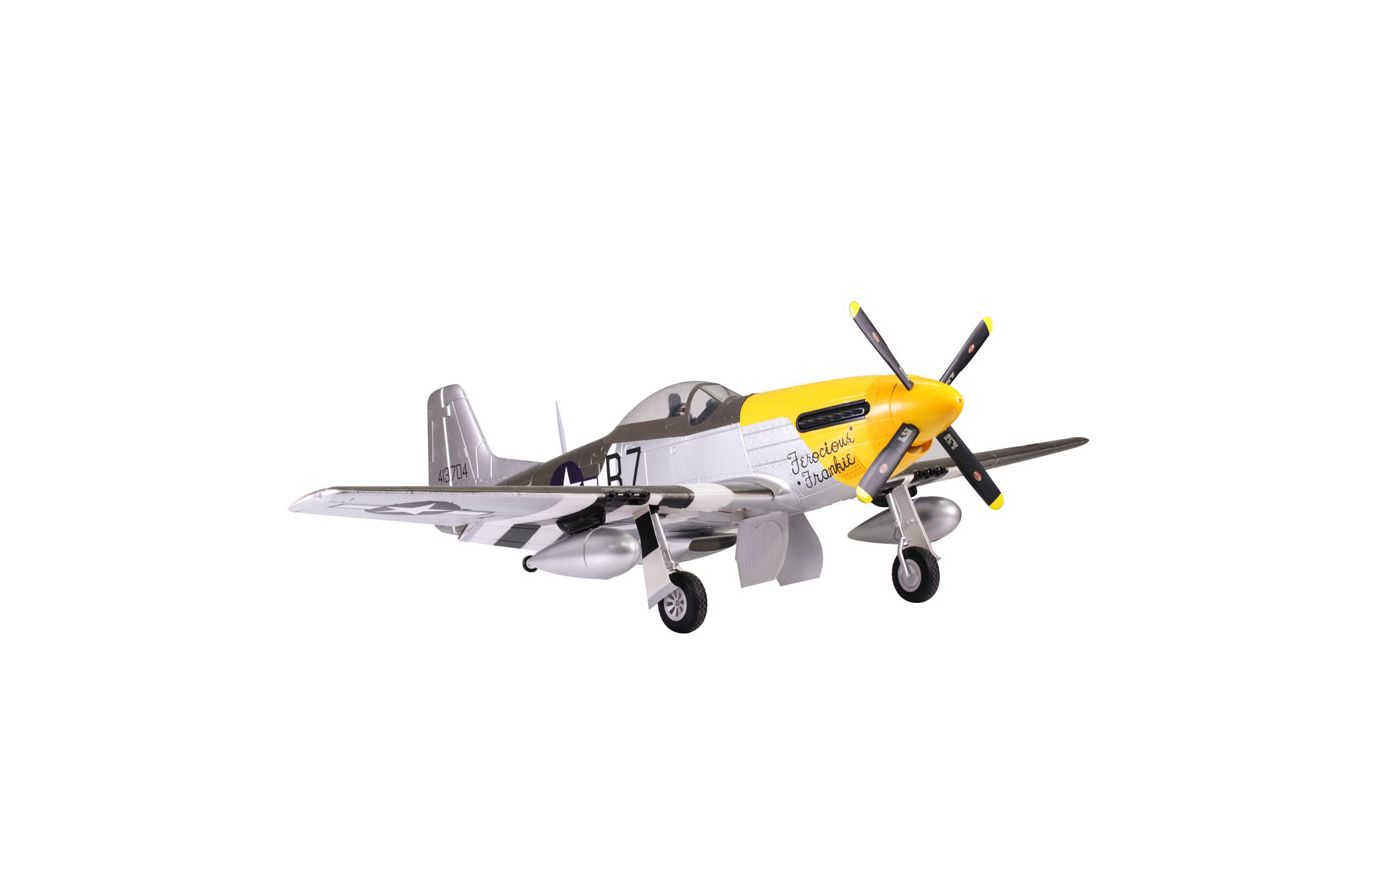 Image for P-51D Ferocious Frankie PNP, 1700mm from Force RC